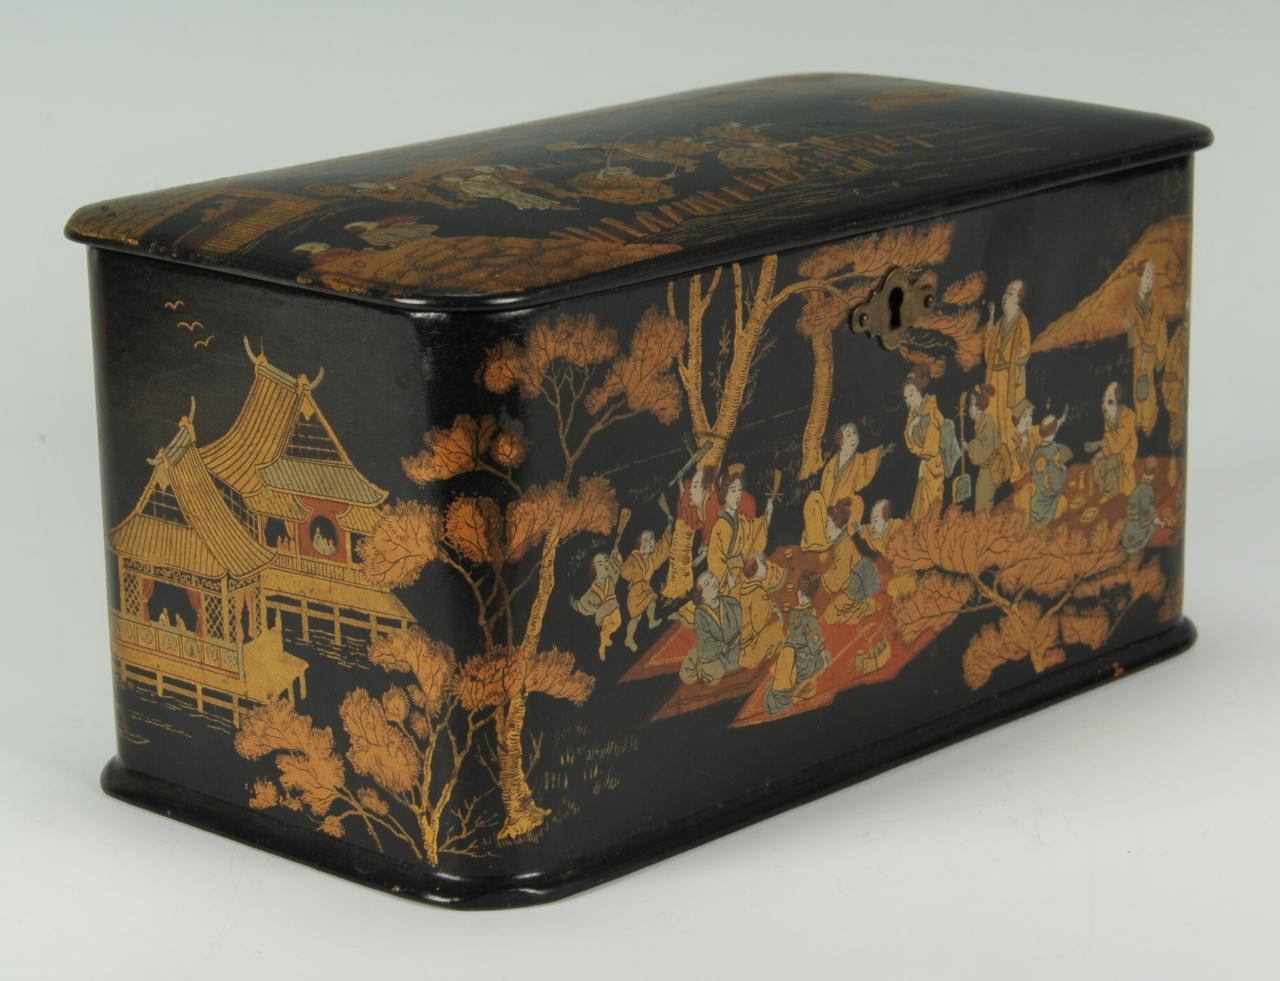 Lot 209: Japanese black lacquered tea caddy, late 19th c.